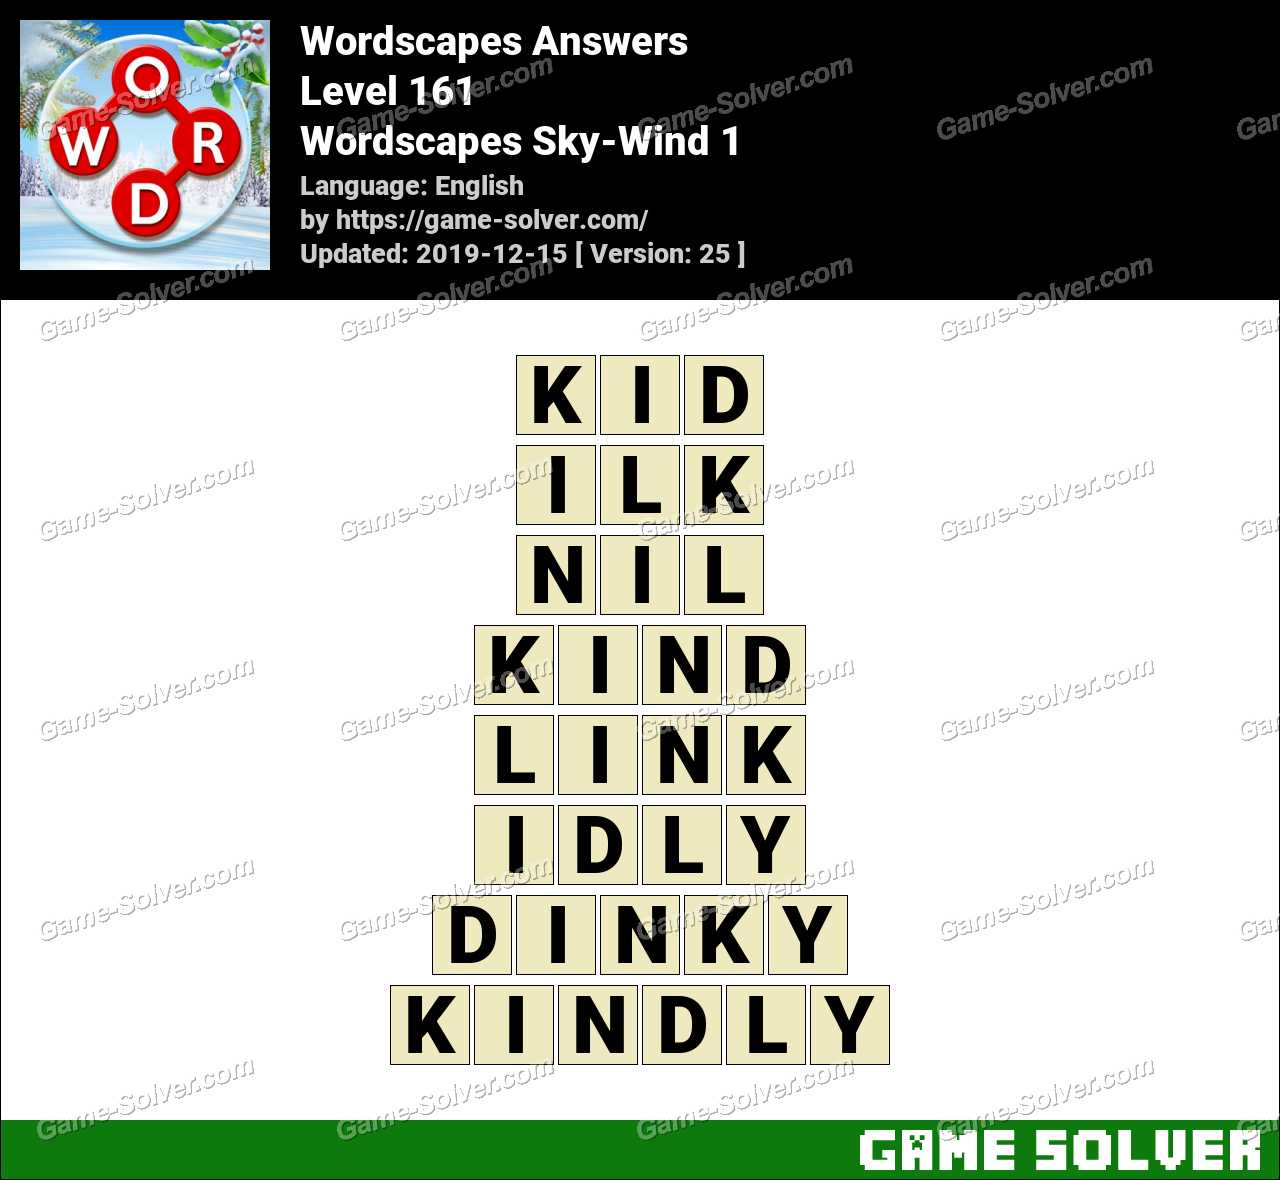 Wordscapes Sky-Wind 1 Answers